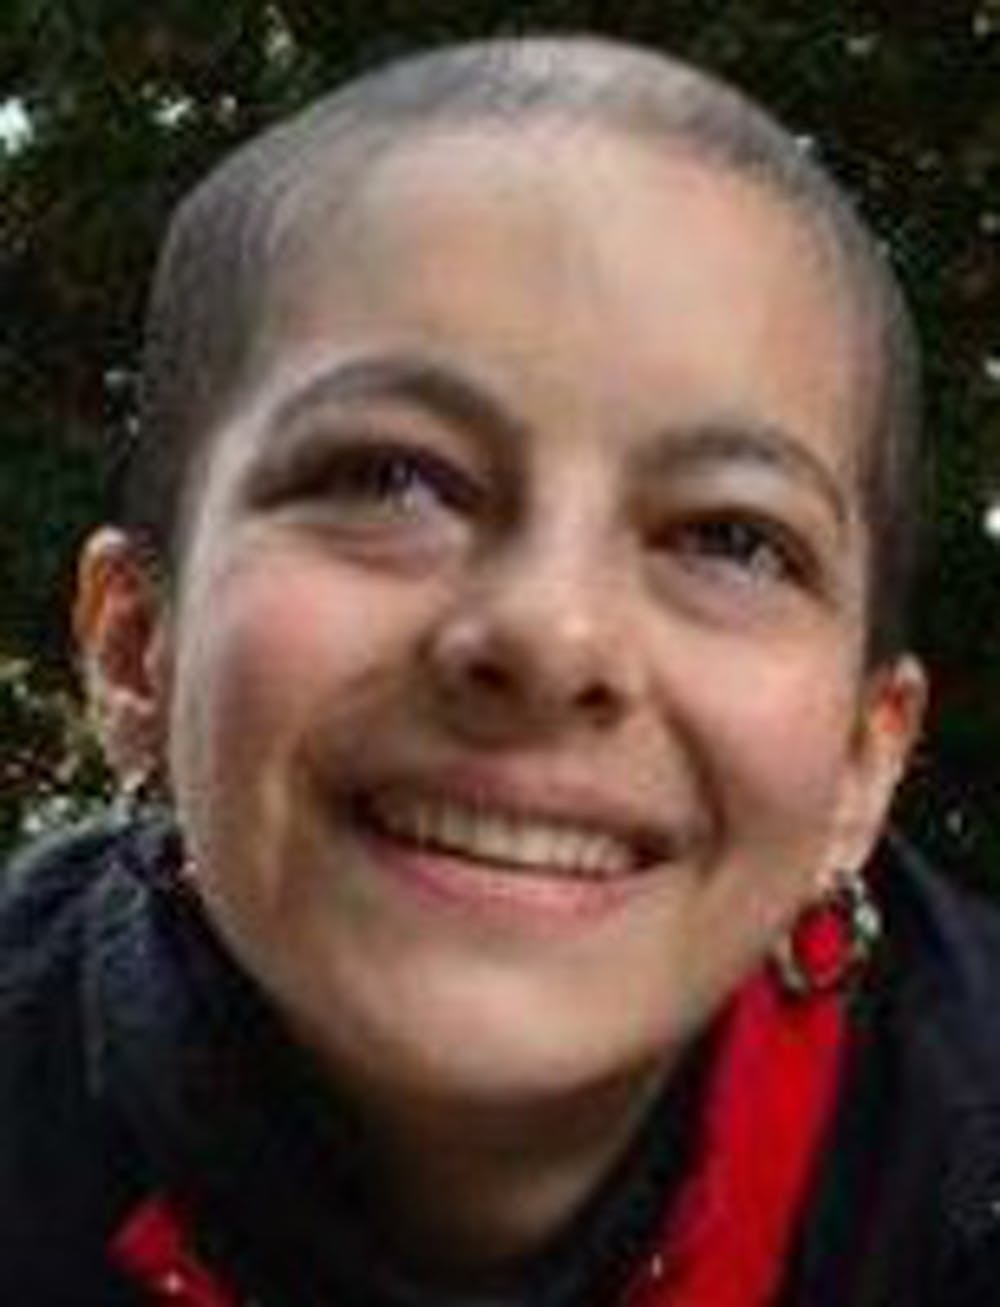 UNC junior Laura Rozo dies after battle with cancer